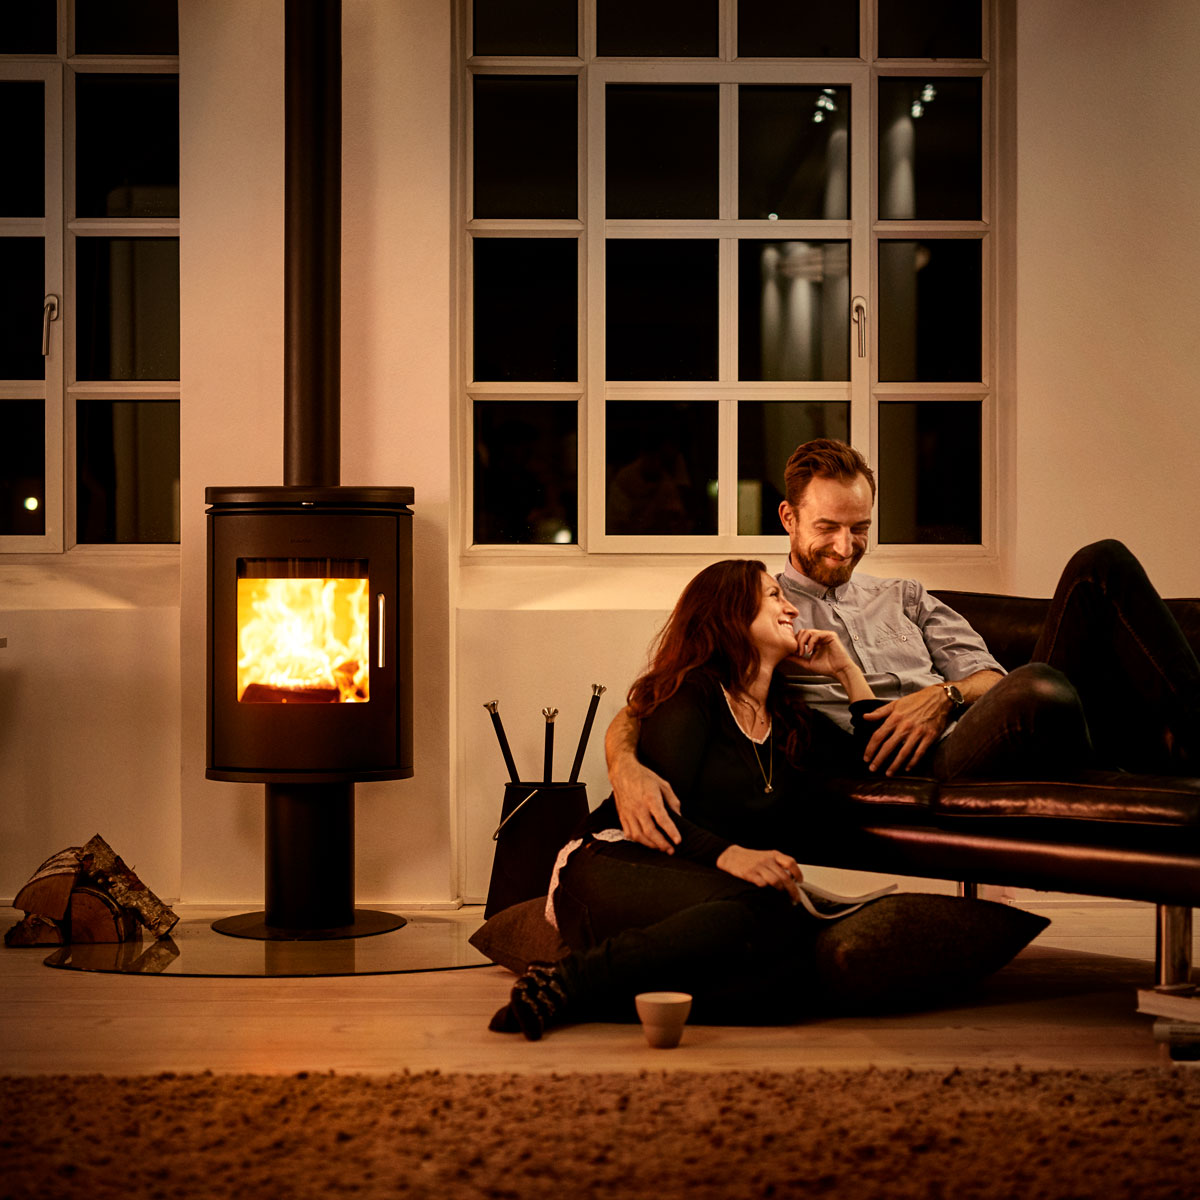 Morso 6148 wood heater in living room next to smiling couple